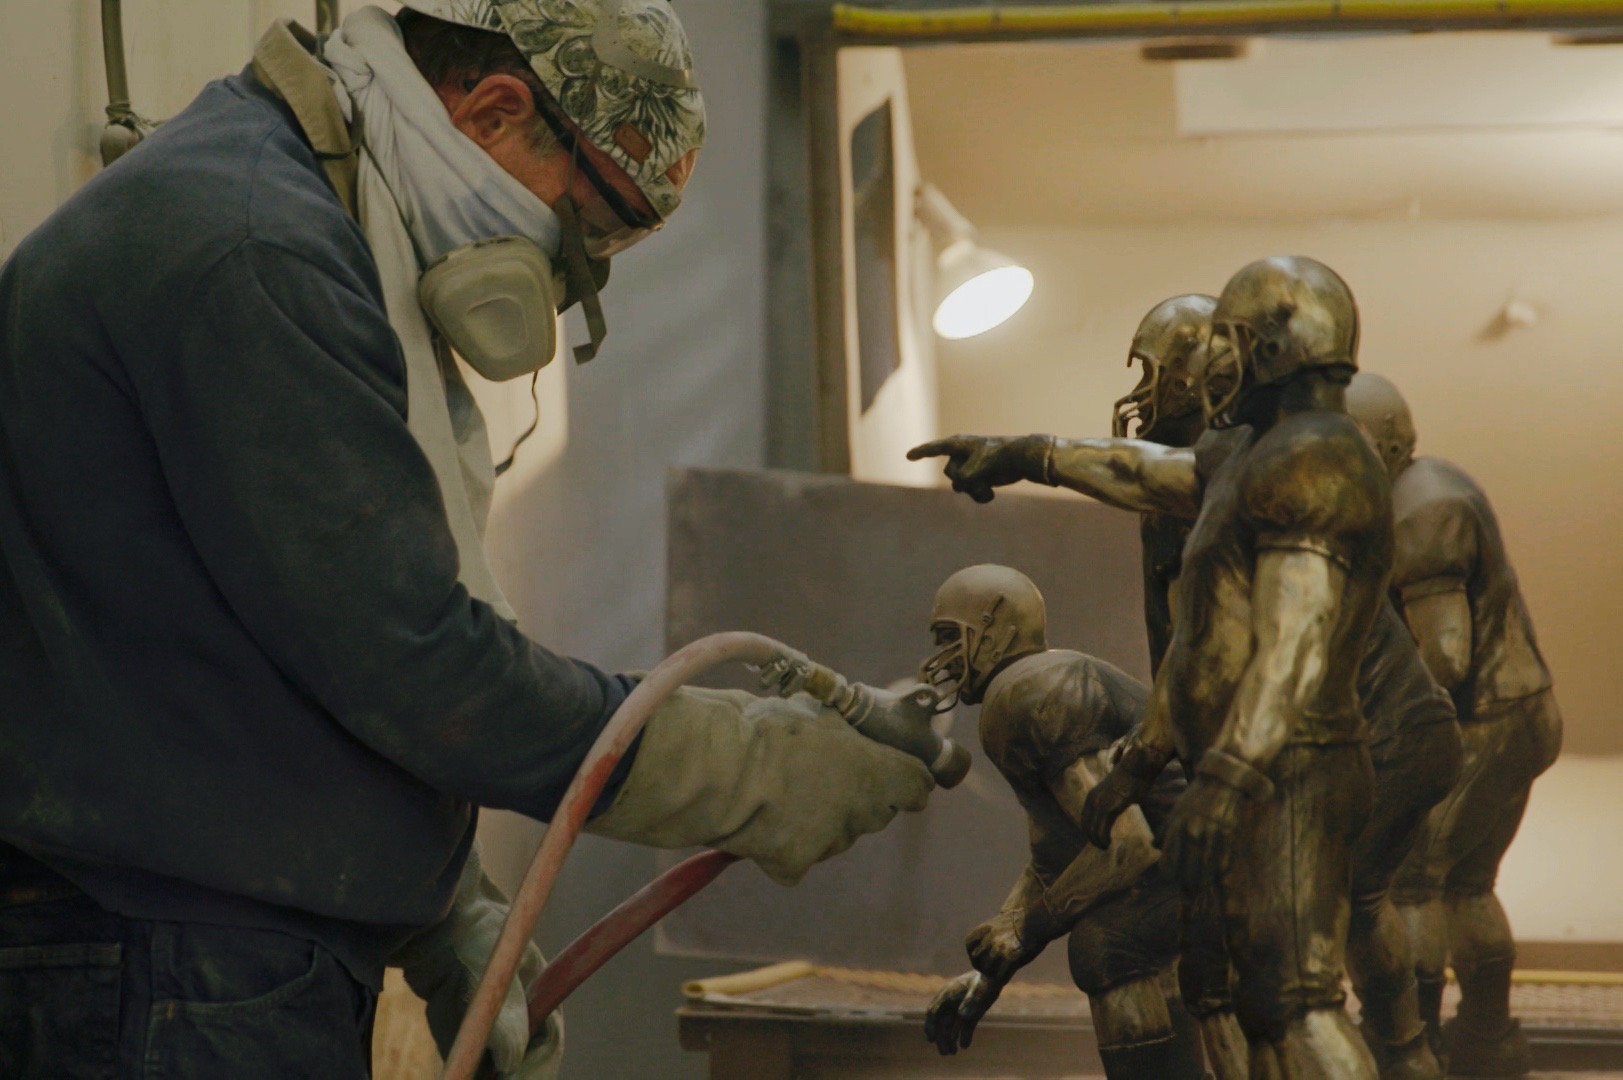 The Joe Moore Award trophy, built by a team led by legendary sports sculptor Jerry McKenna, is sandblasted in preparation for its unveiling